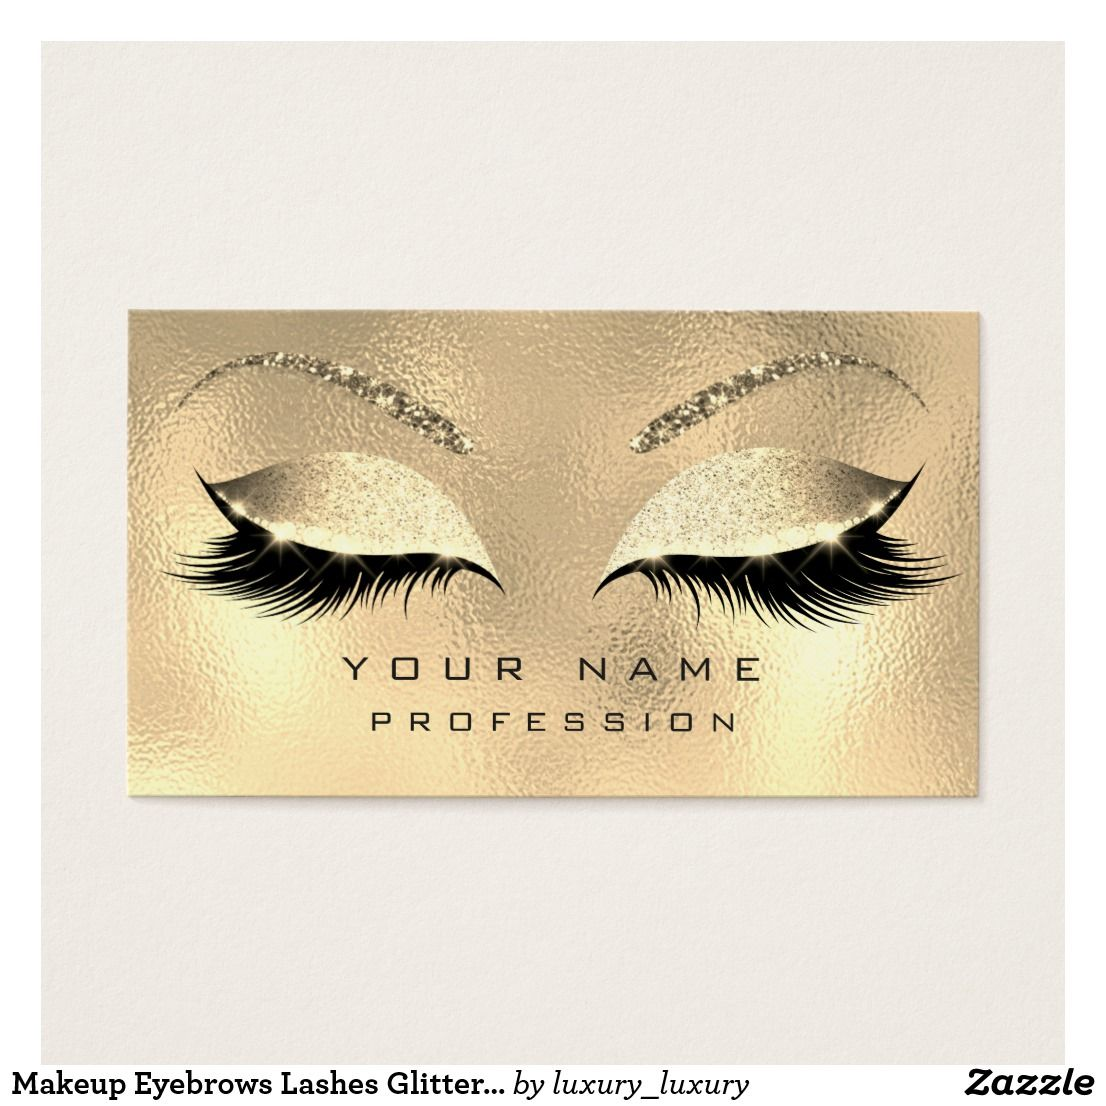 5a14c4760c6 Makeup Eyebrows Lashes Glitter Diamond Gold Glam Business Card ...